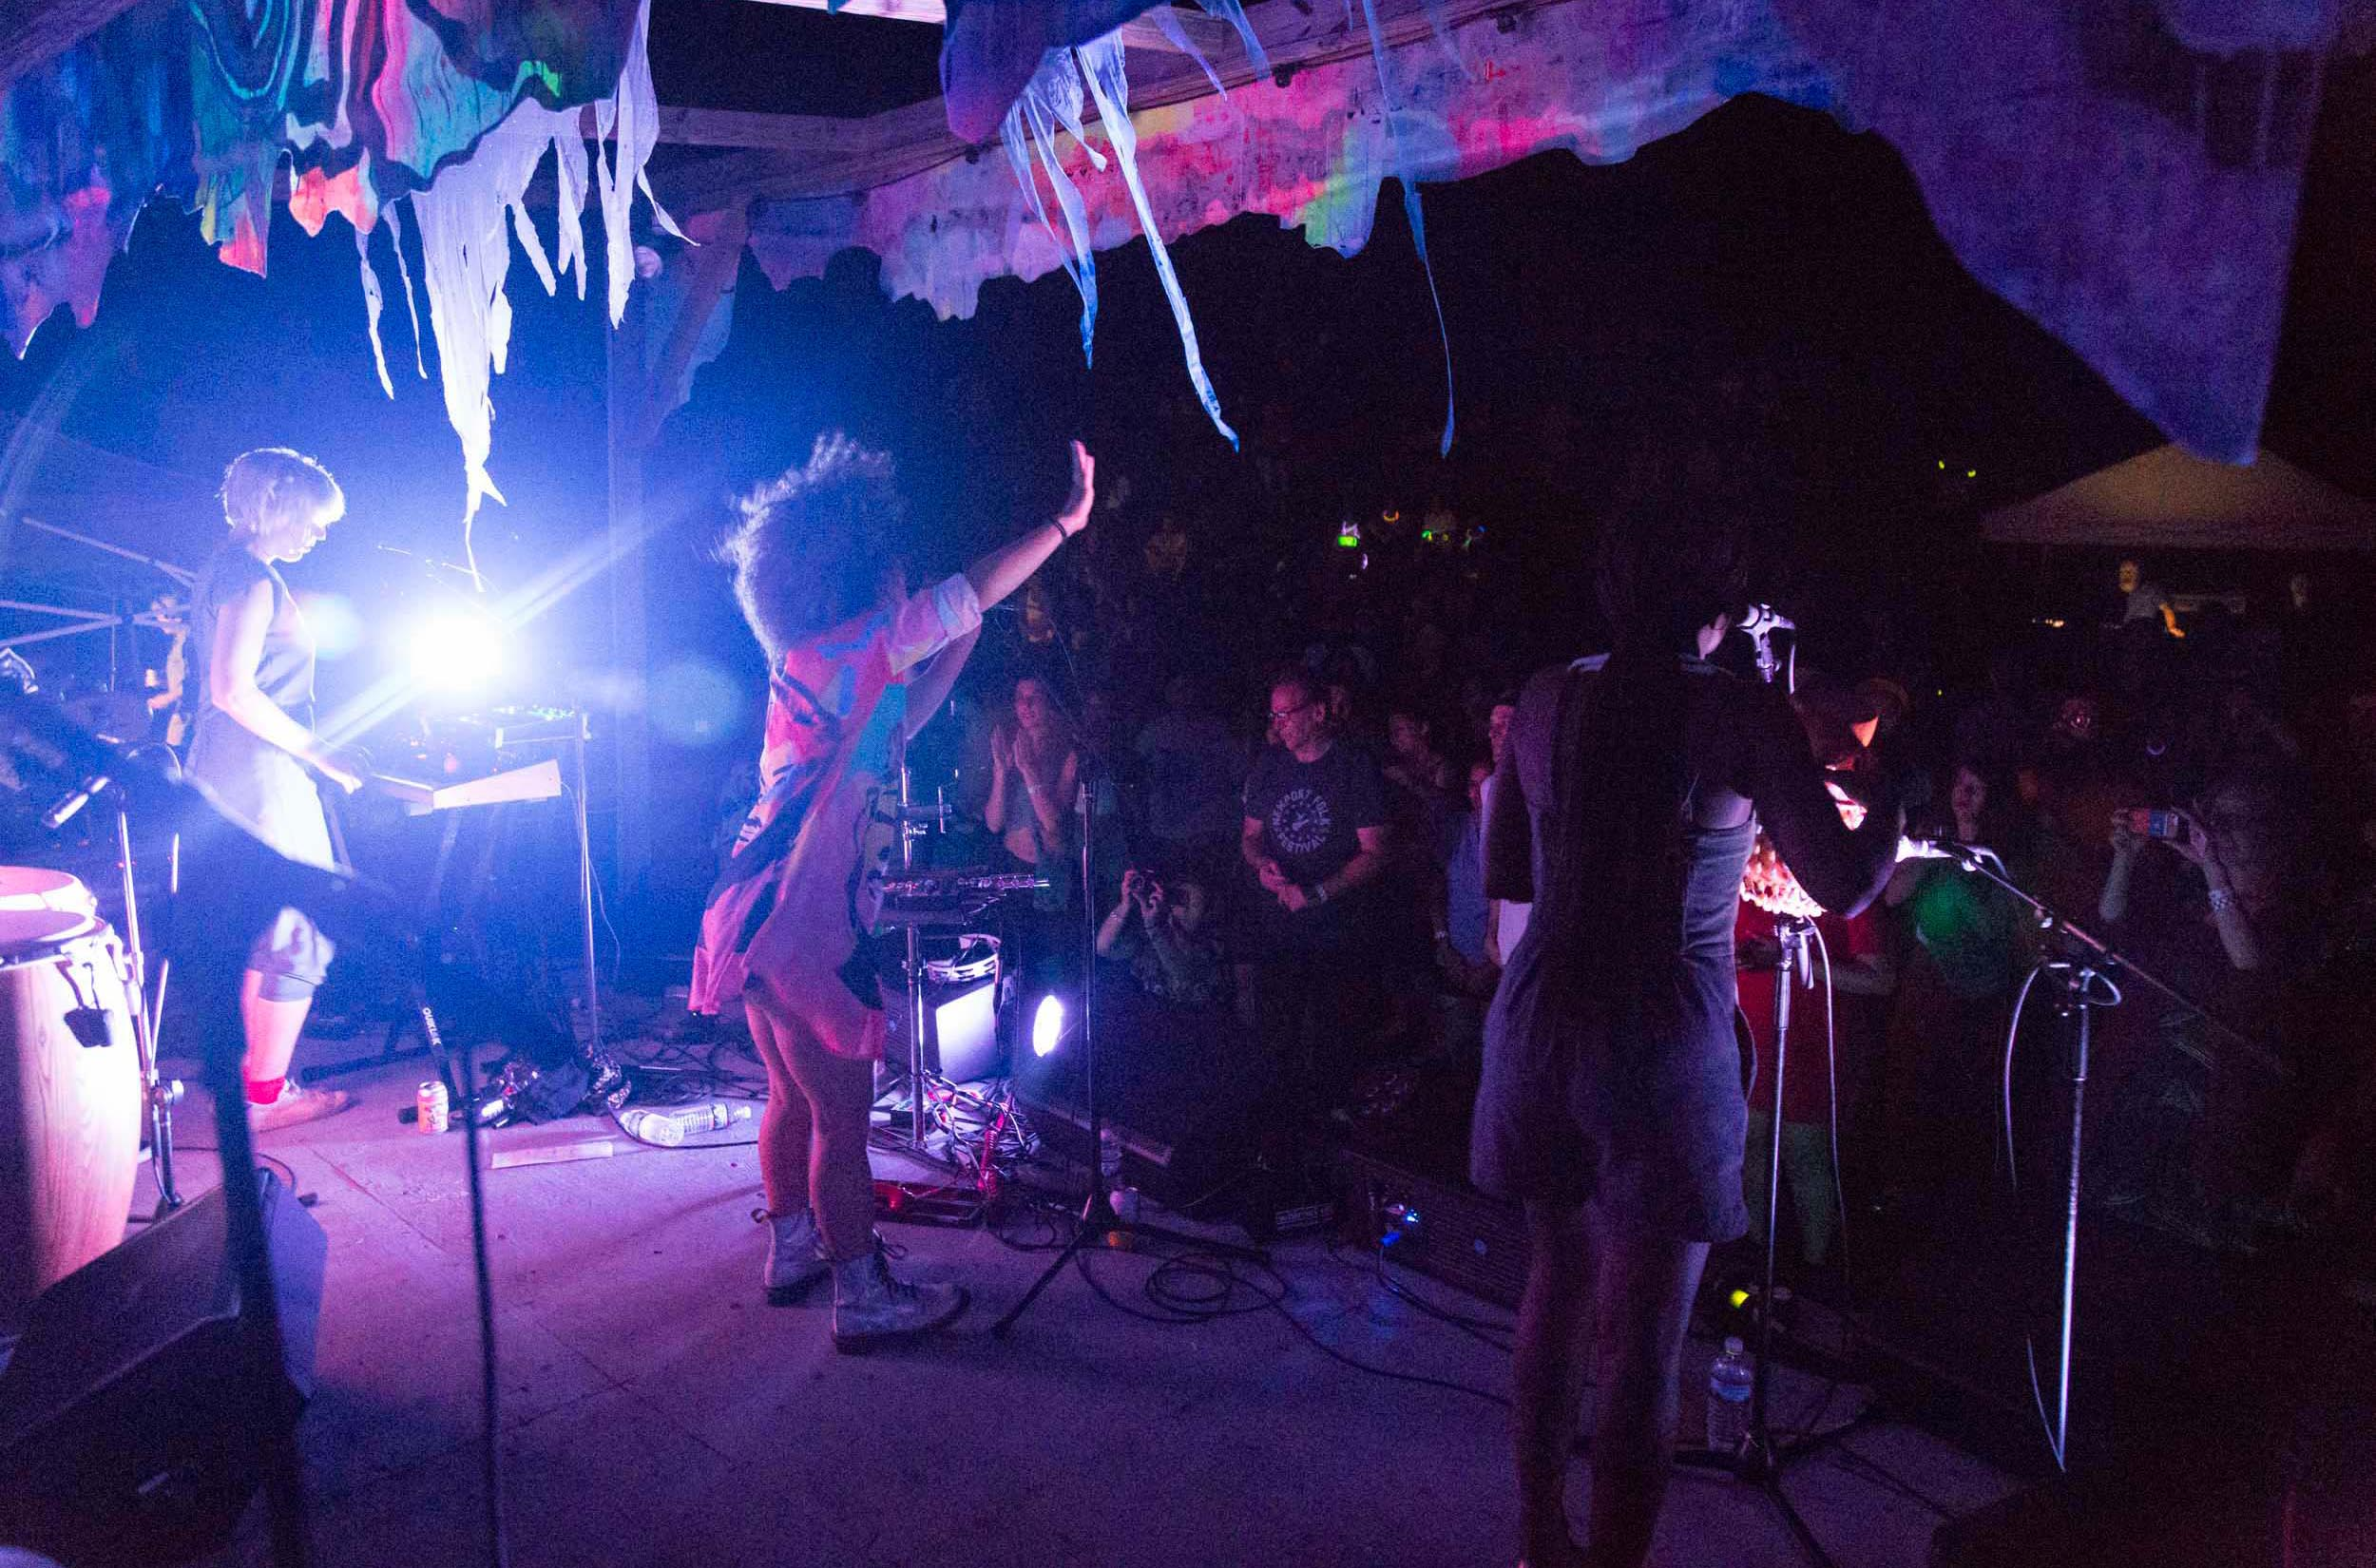 A band plays for an audience of attendees at the Wassaic Project festival.